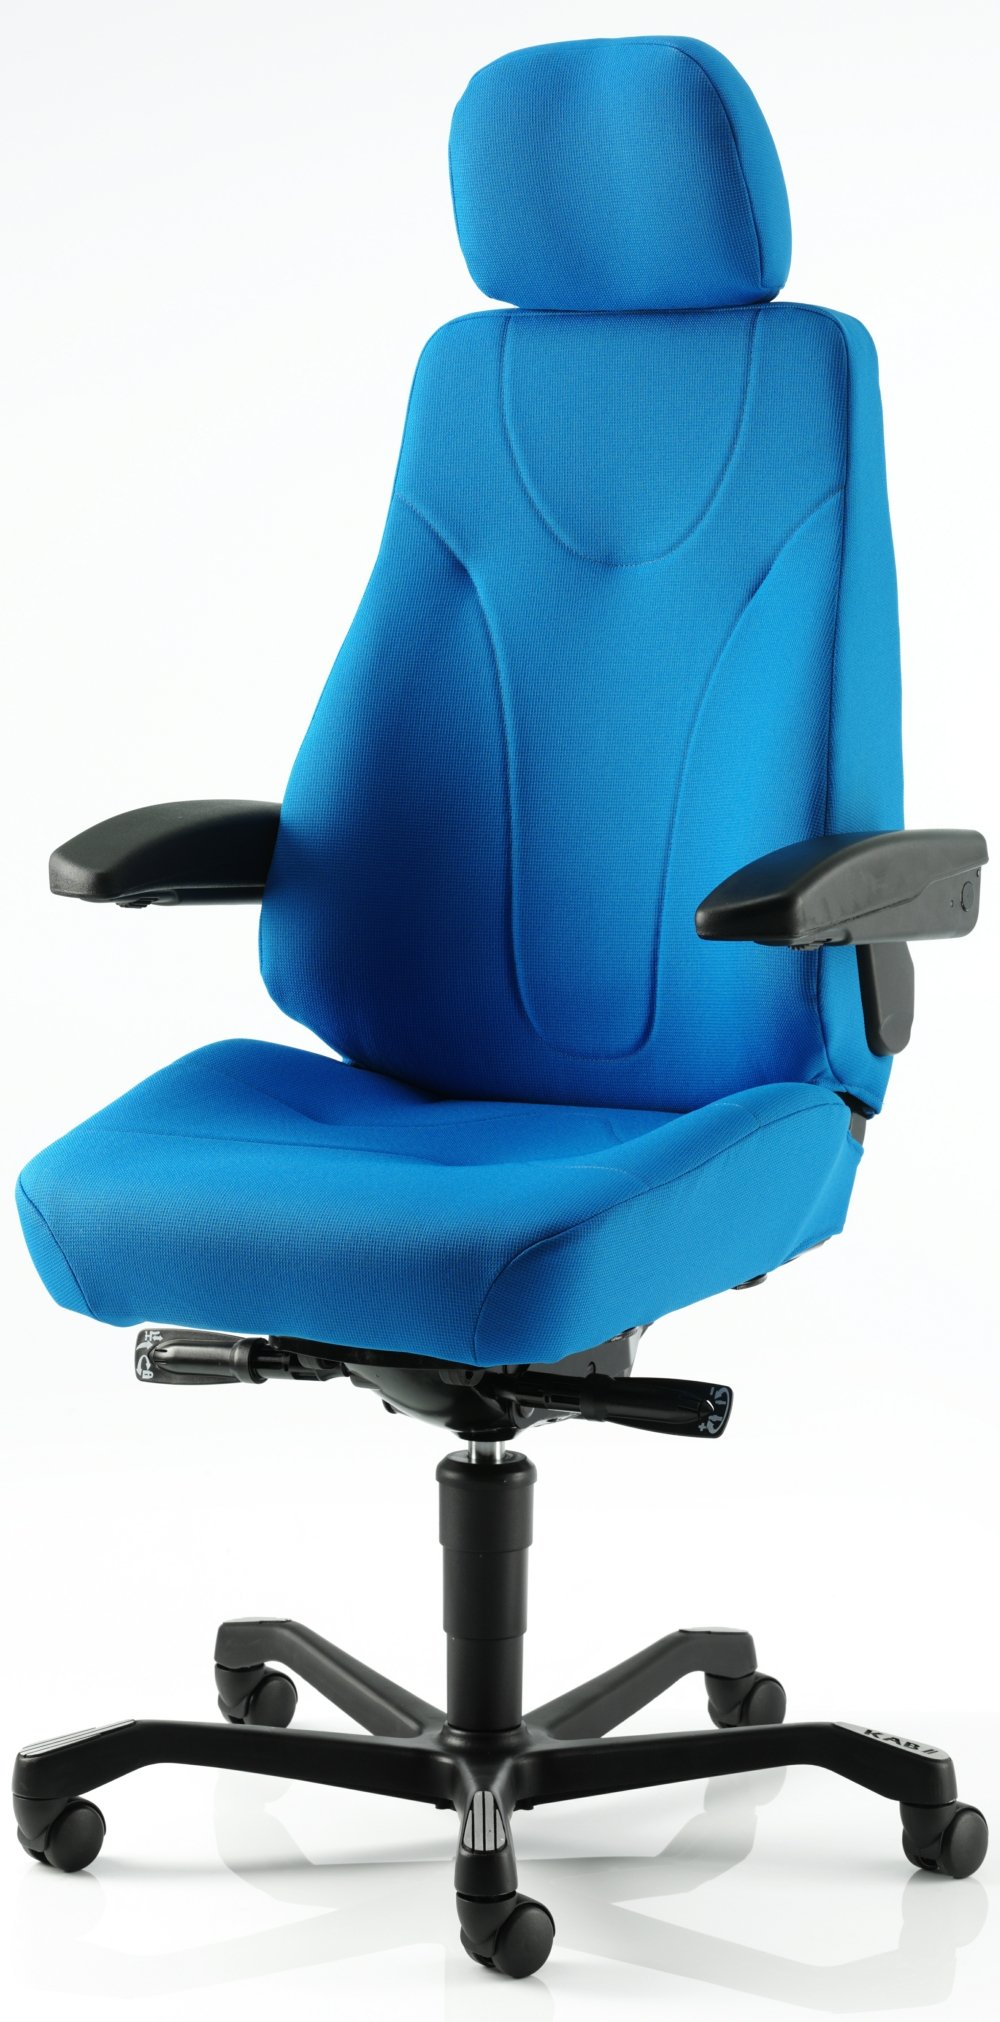 24 7 Control Room Chairs